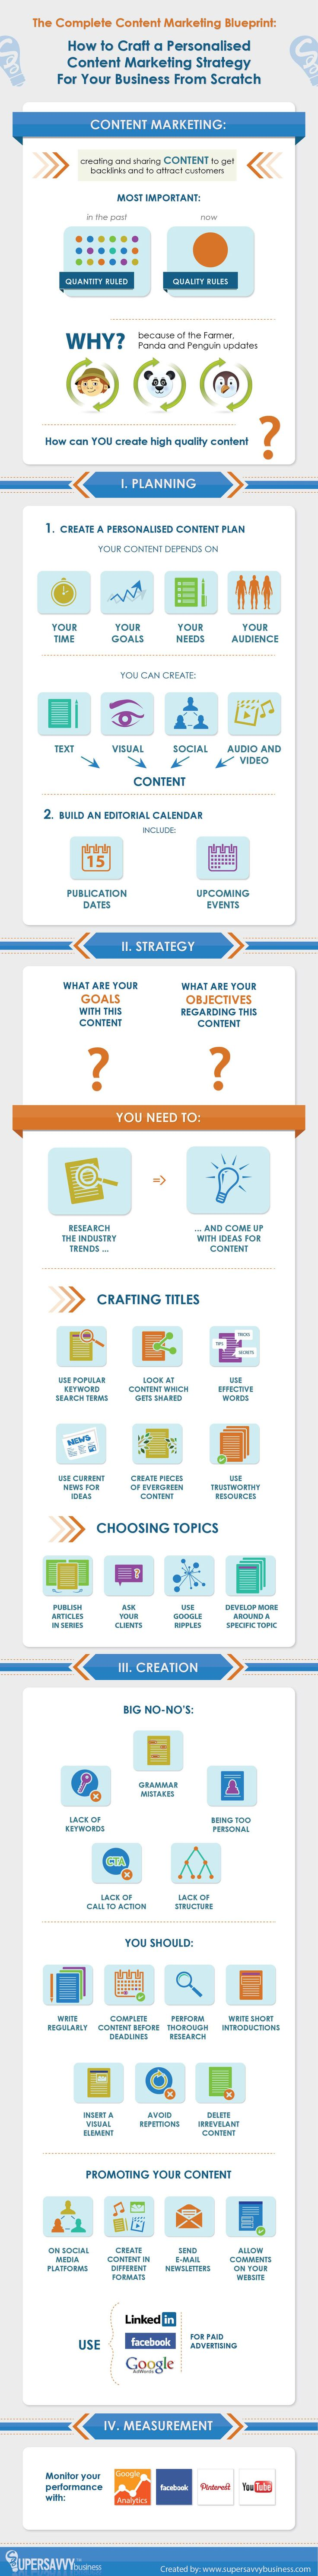 content marketing, infographic, social media marketing, complete content marketing guide, editorial calendar for content